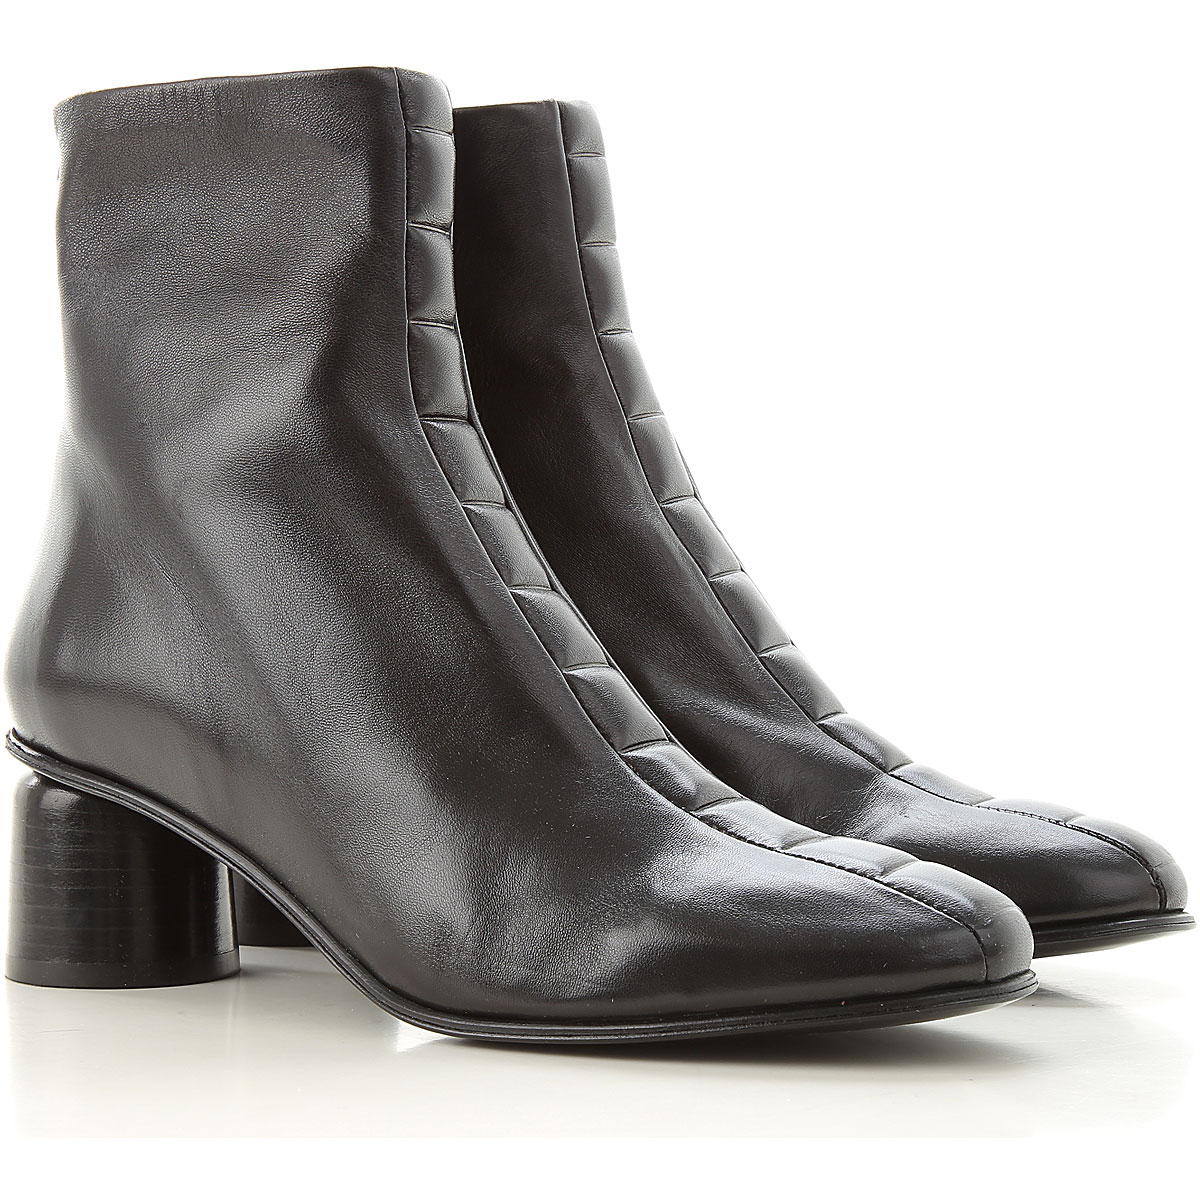 Halmanera Boots for Women, Booties On Sale, Black, Leather, 2019, 5 6.5 7 8.5 9